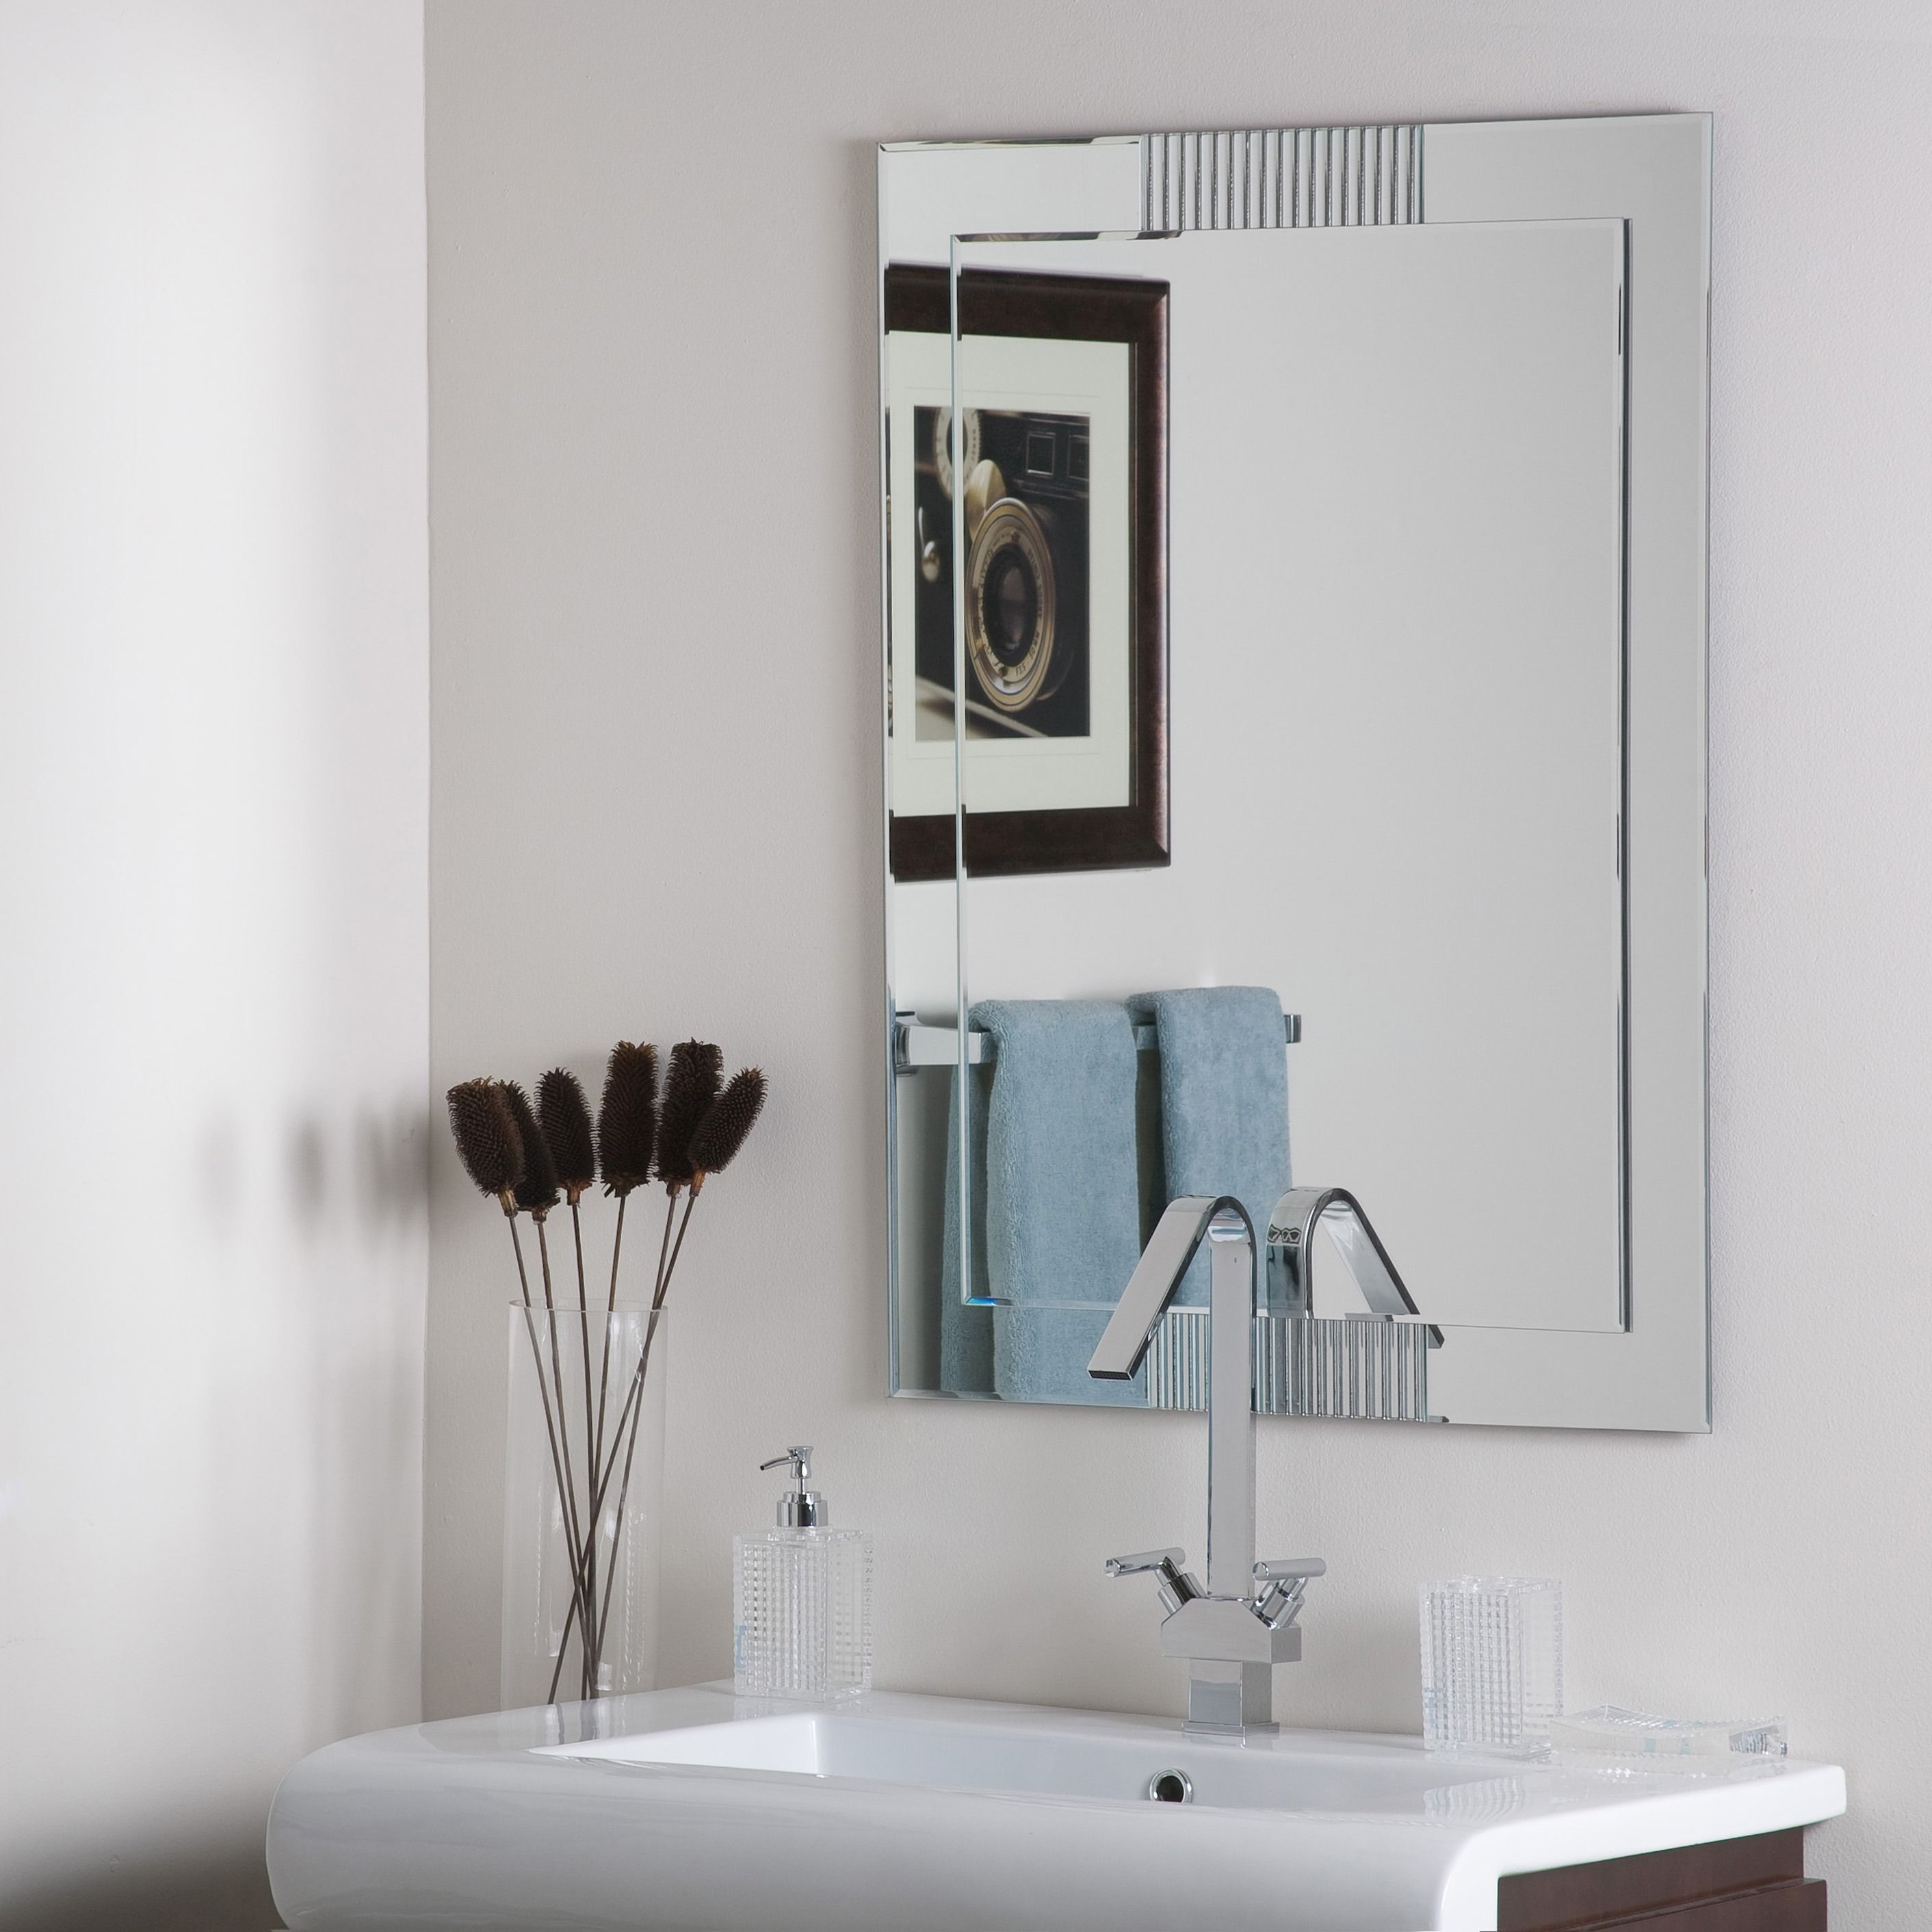 2019 Logan Frameless Wall Mirrors In This Stylish Frameless Wall Mirror Is The Latest Design In Francisca (View 10 of 20)